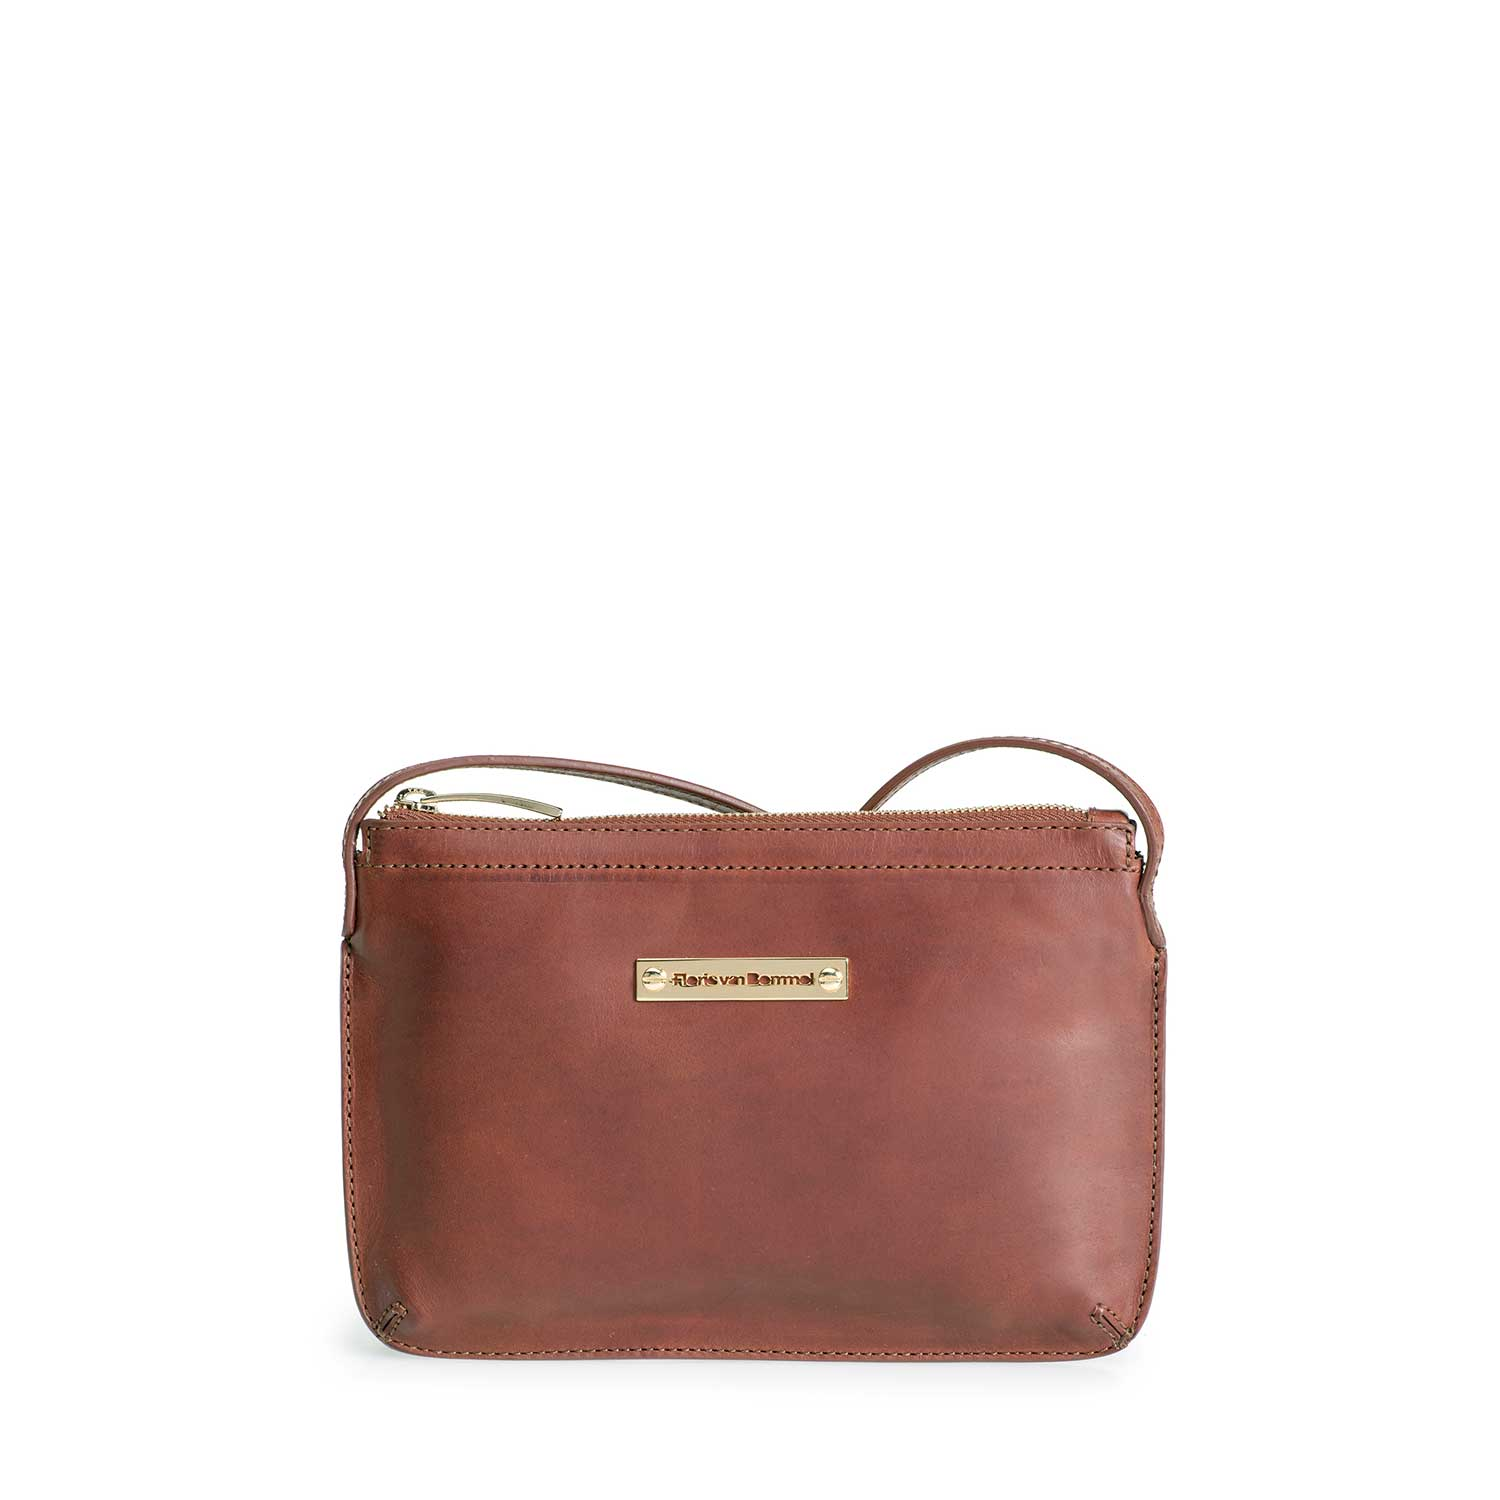 89010/01 - Brown leather cross body bag